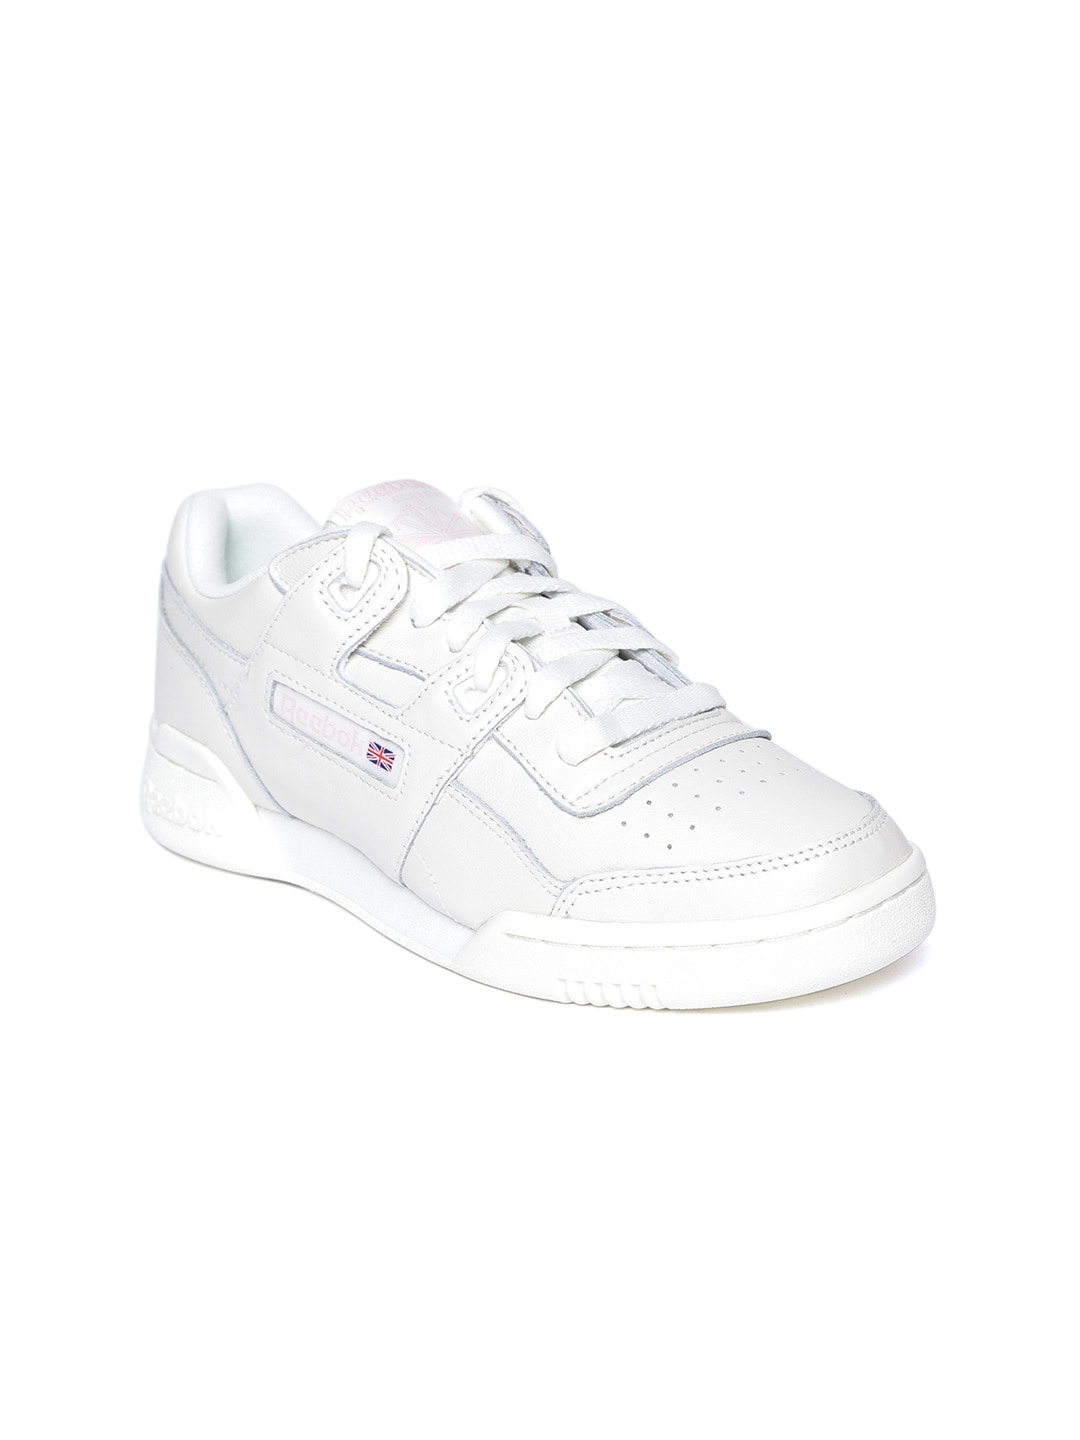 59051498188 Reebok Red White Shoes Casual - Buy Reebok Red White Shoes Casual online in  India